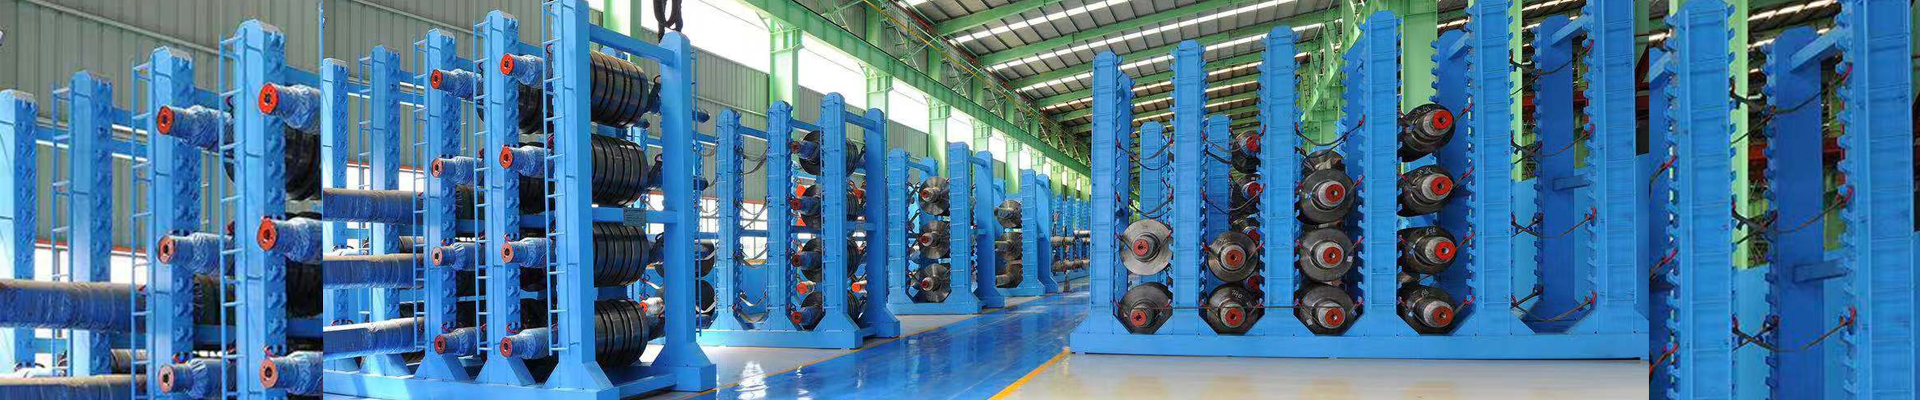 Tangshan Yongfeng Roll Co., Ltd.